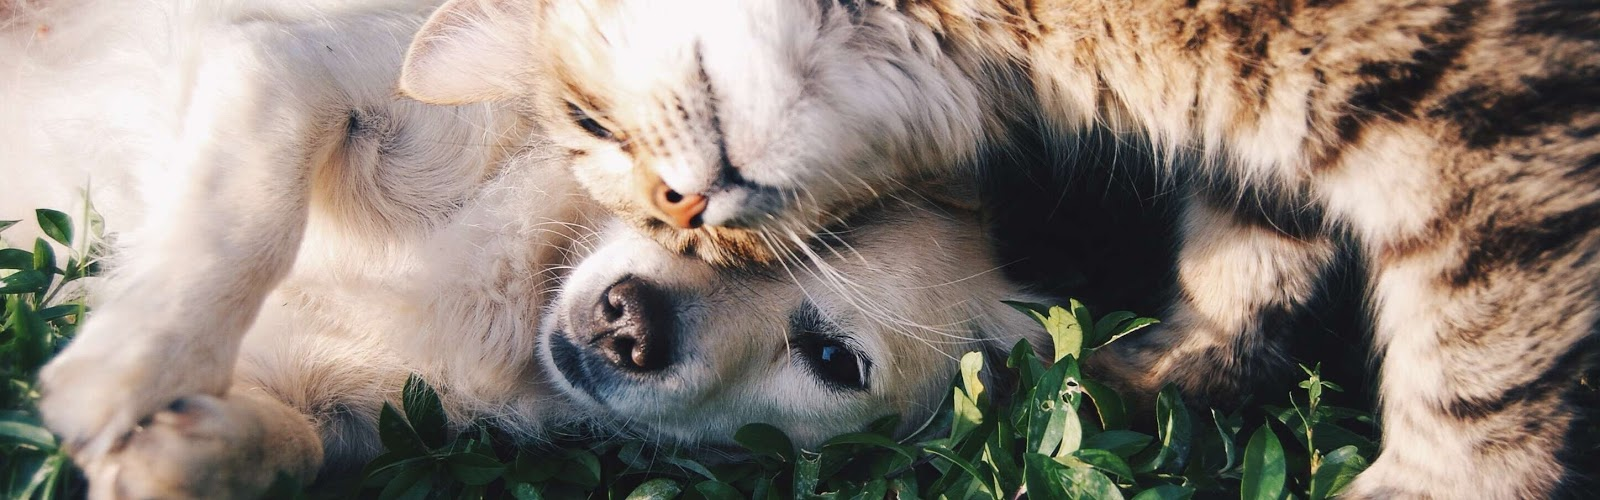 Home Visits For Dogs & Cats Lyndhurst | Paws & Prints